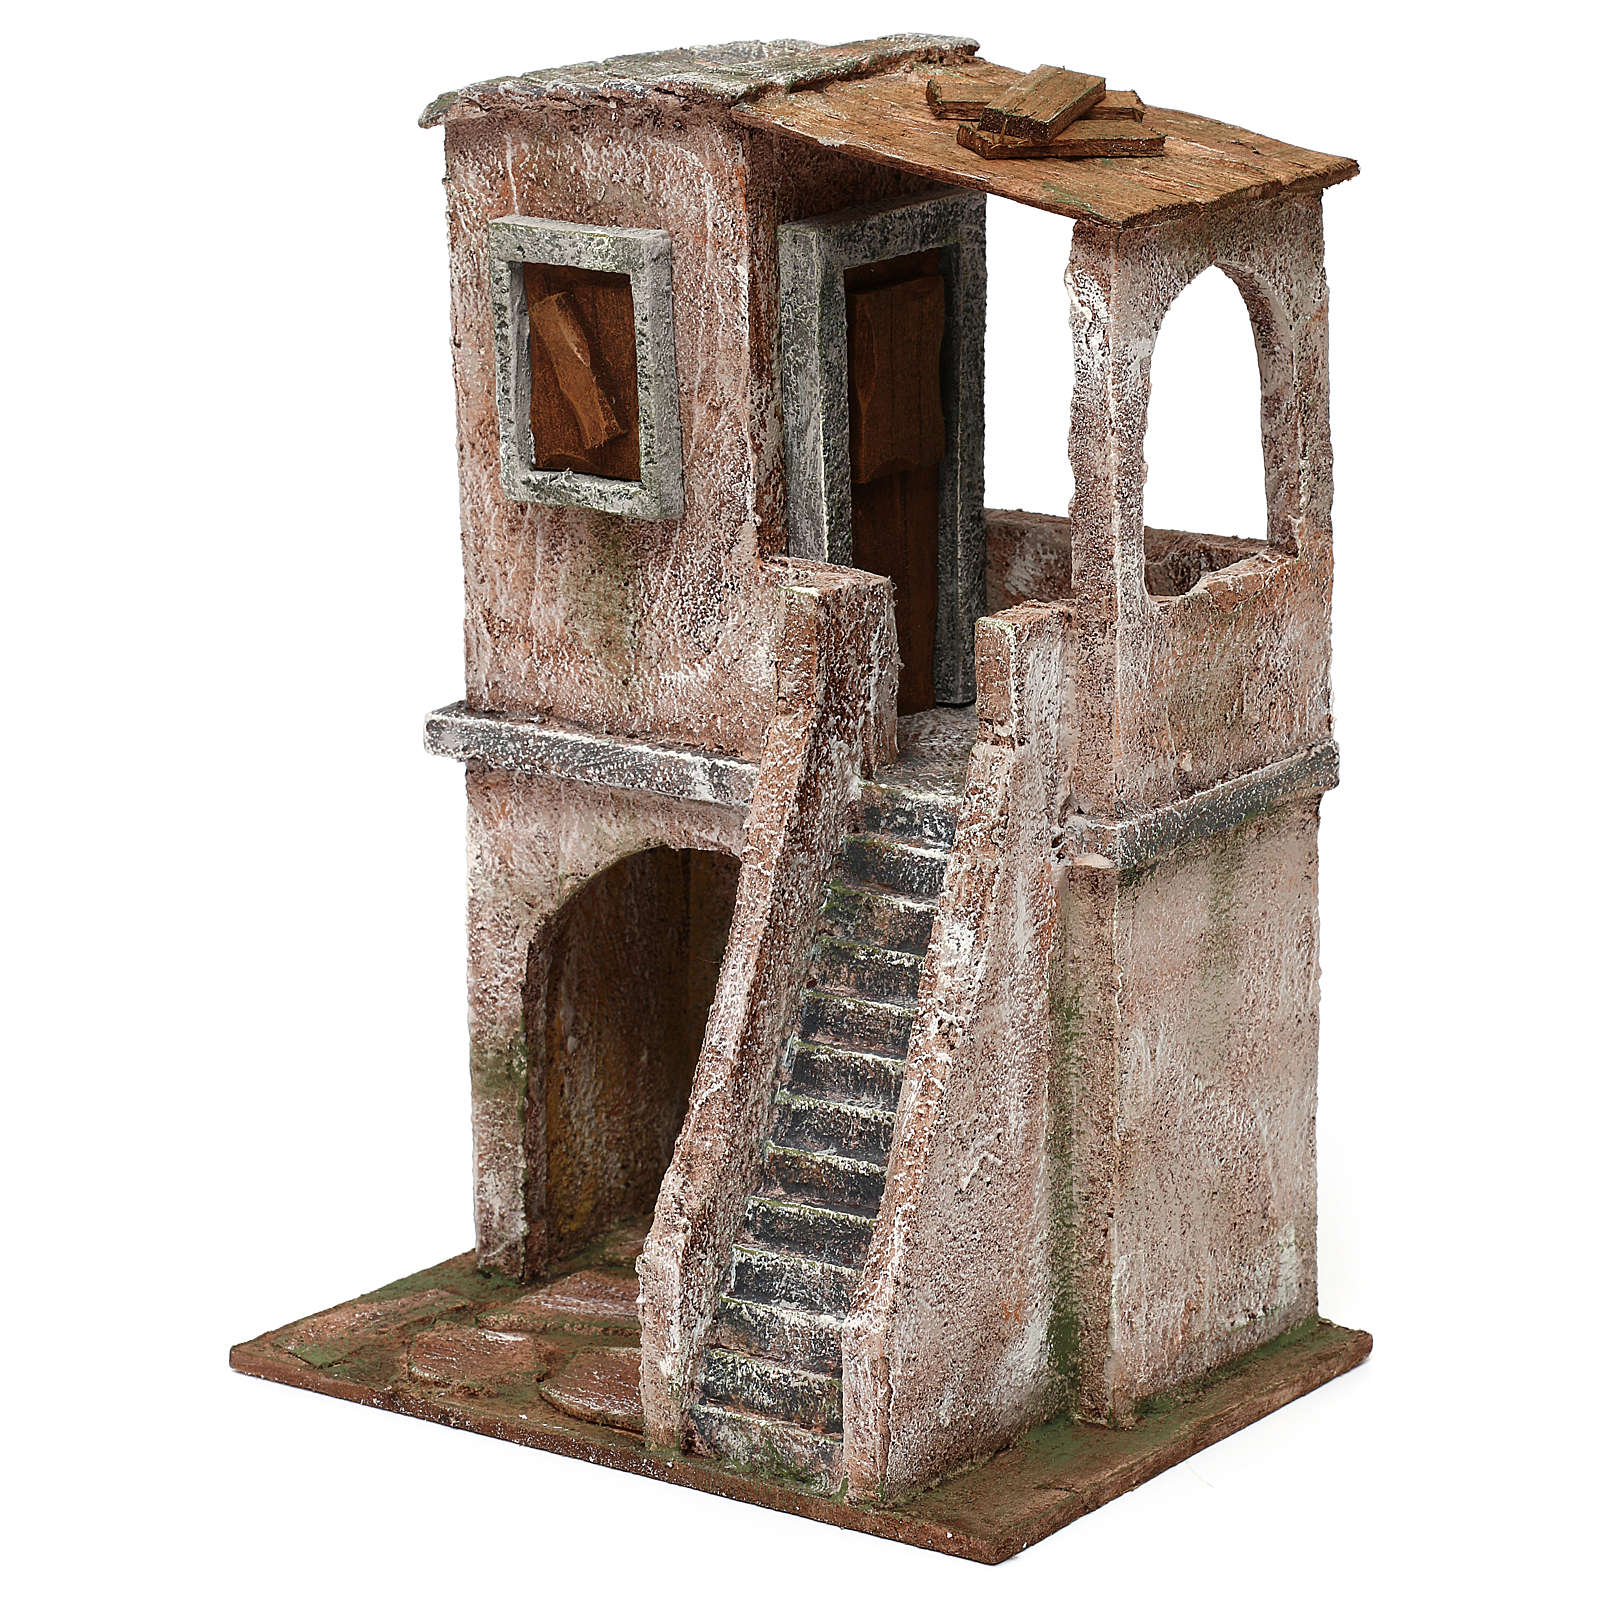 Two-floor house for 10 cm Nativity scene, 30x20x15 cm 4